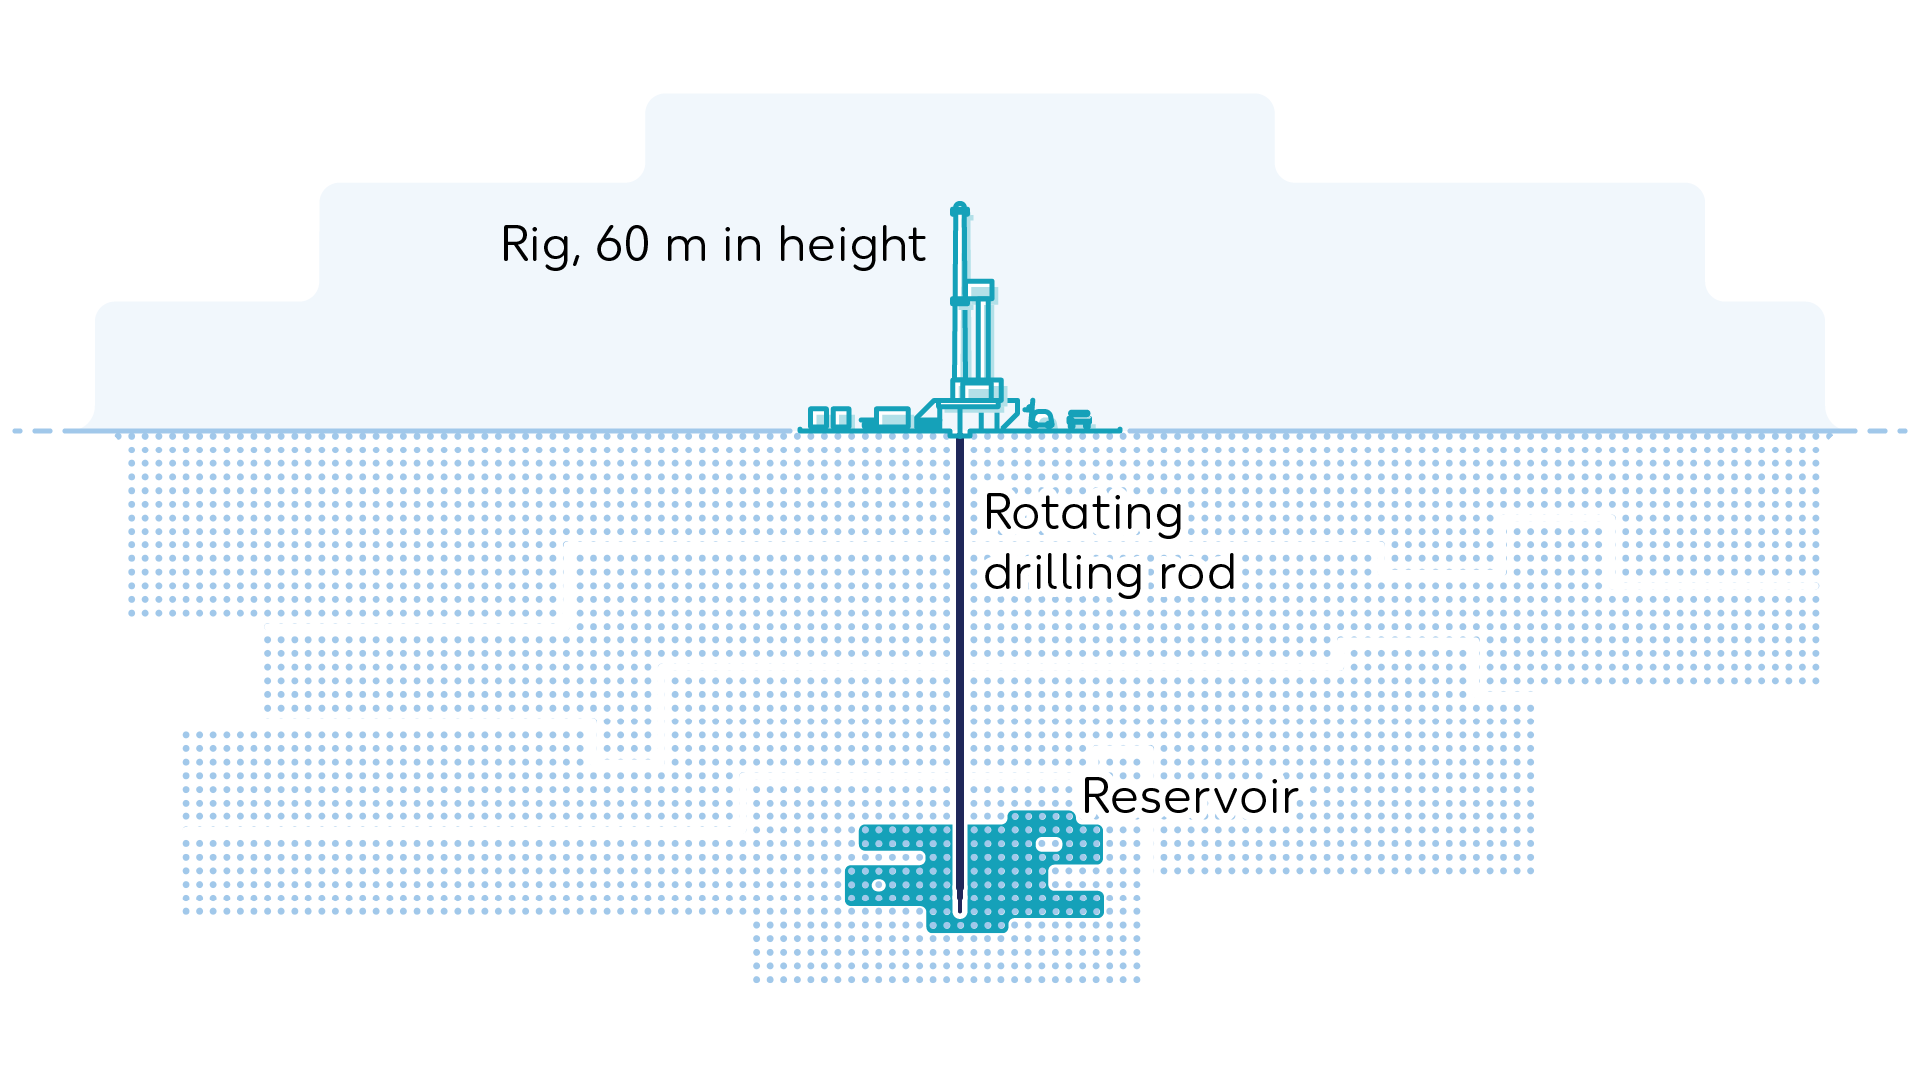 Wintershall Dea Graphic vertical drilling